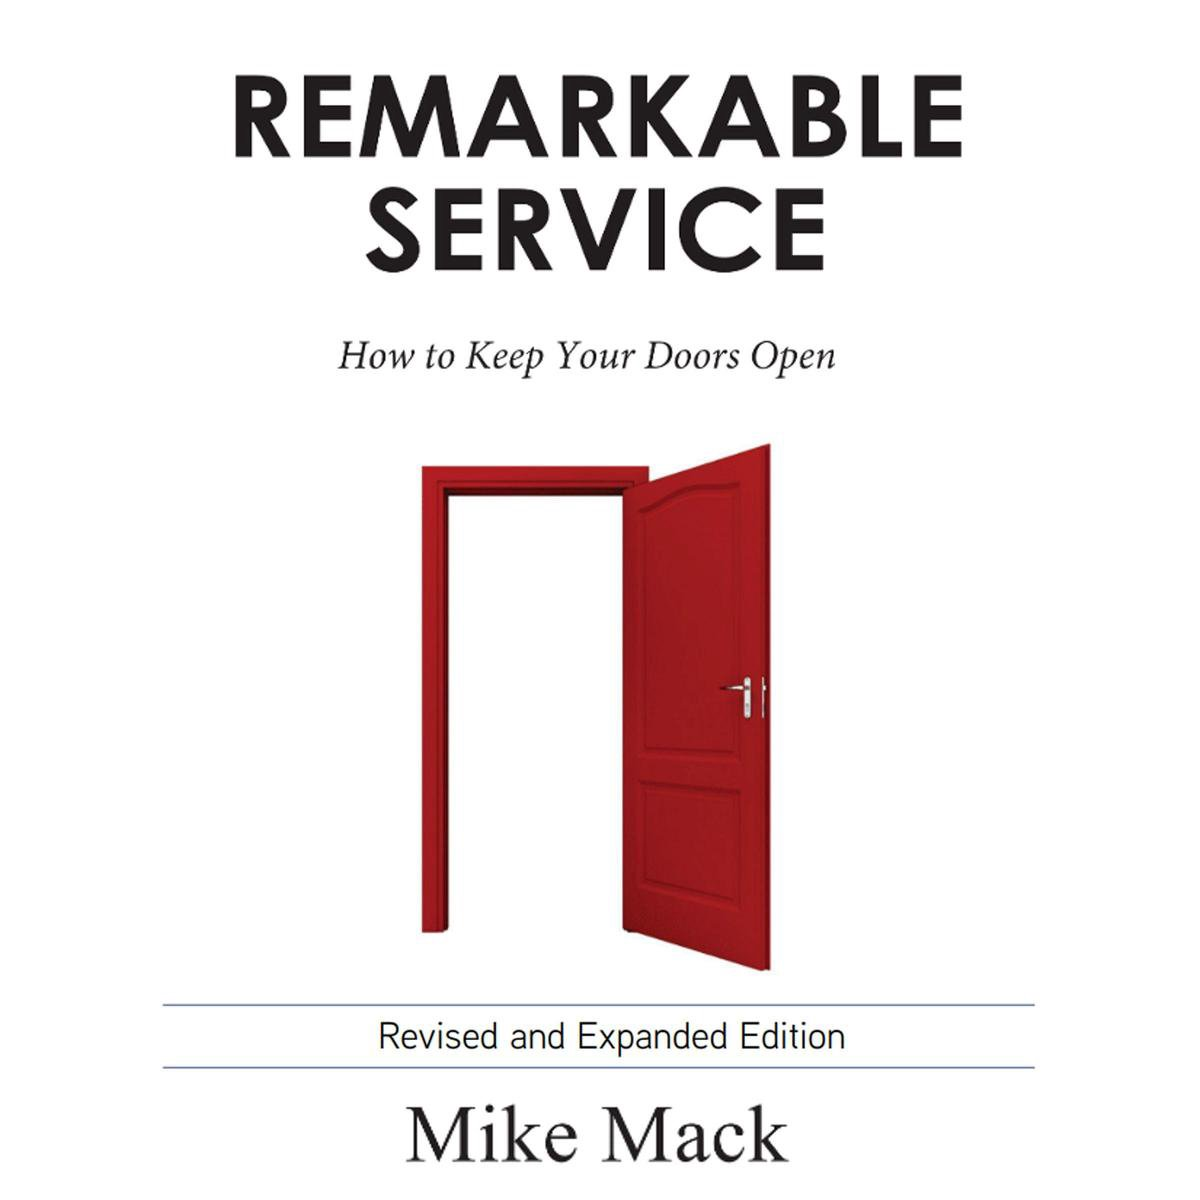 Remarkable Service - How to Keep Your Doors Open